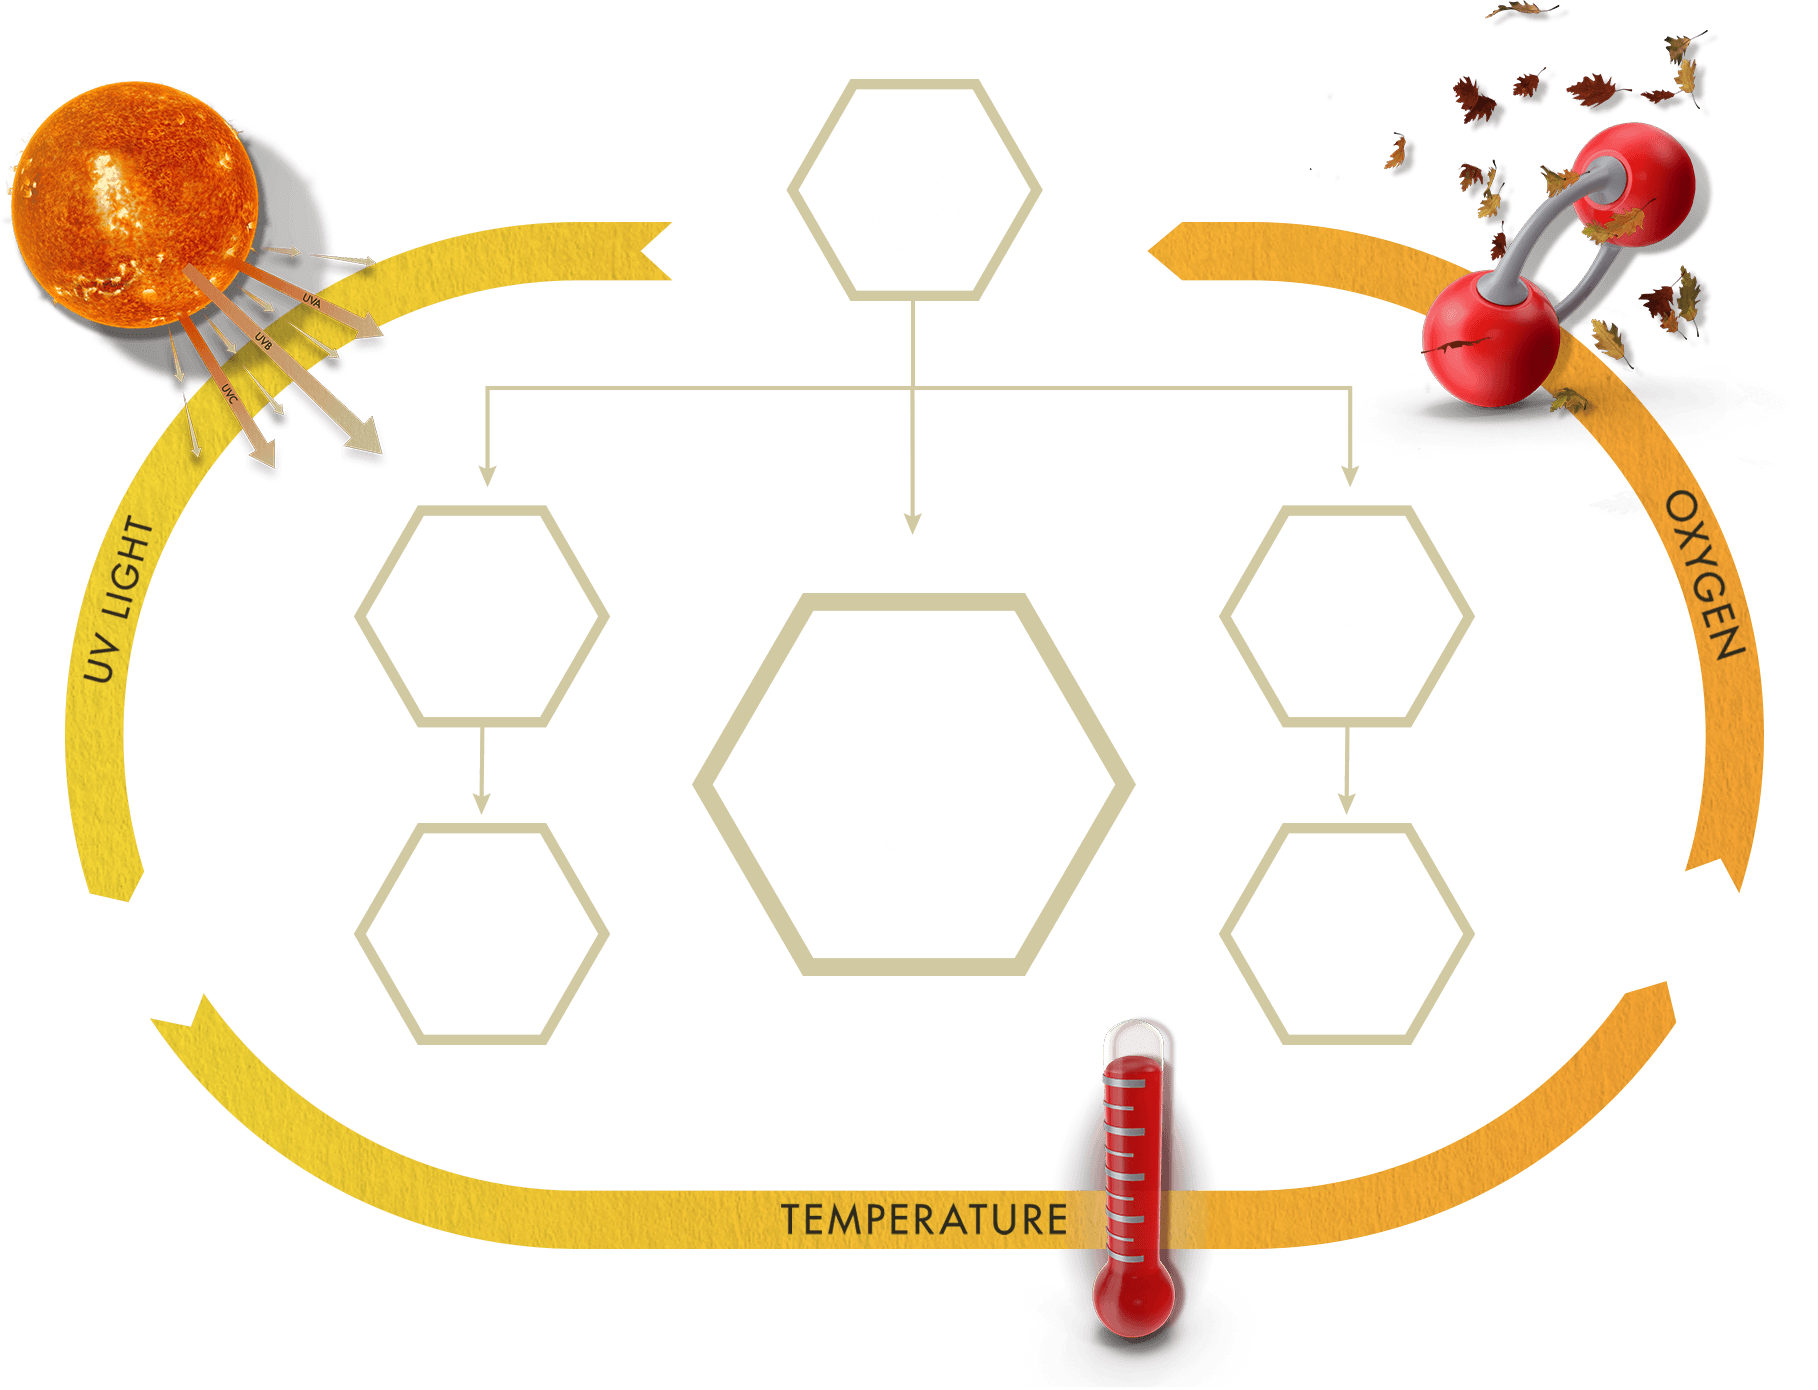 Mother of all Cannabinoids - Buy CBG (Cannabigerol) Oil and Hemp Oil Products